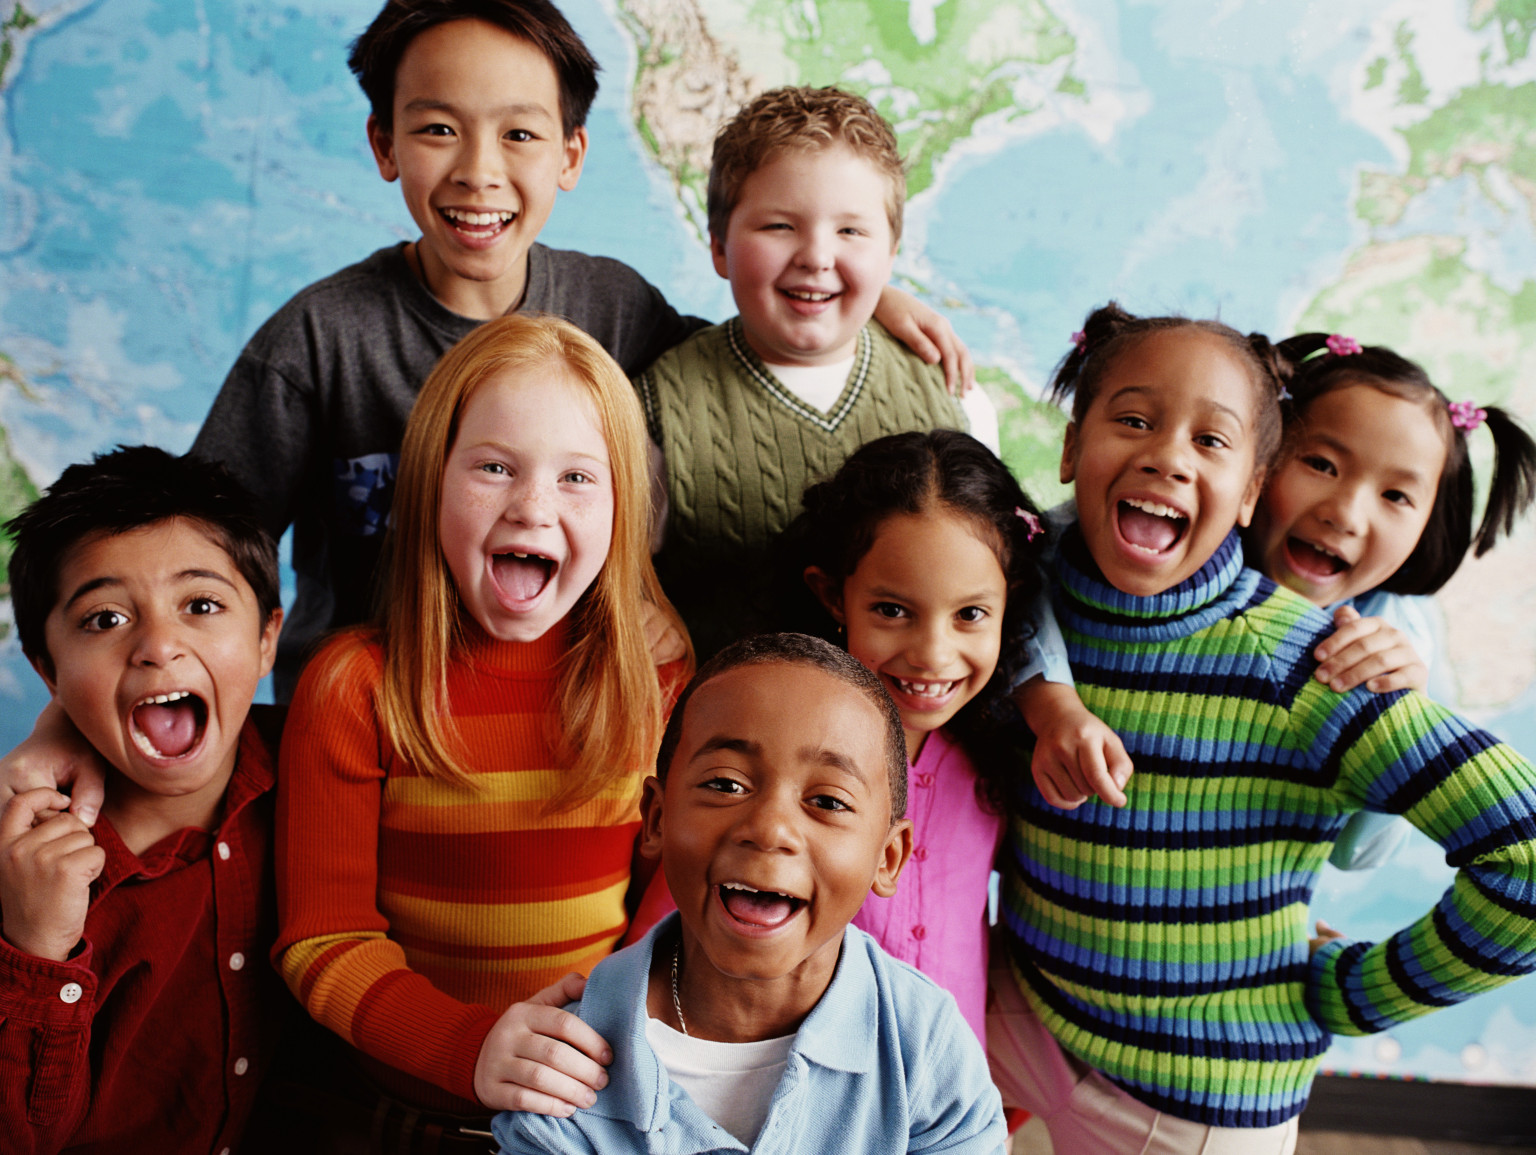 Children Different Races 1536 x 1155